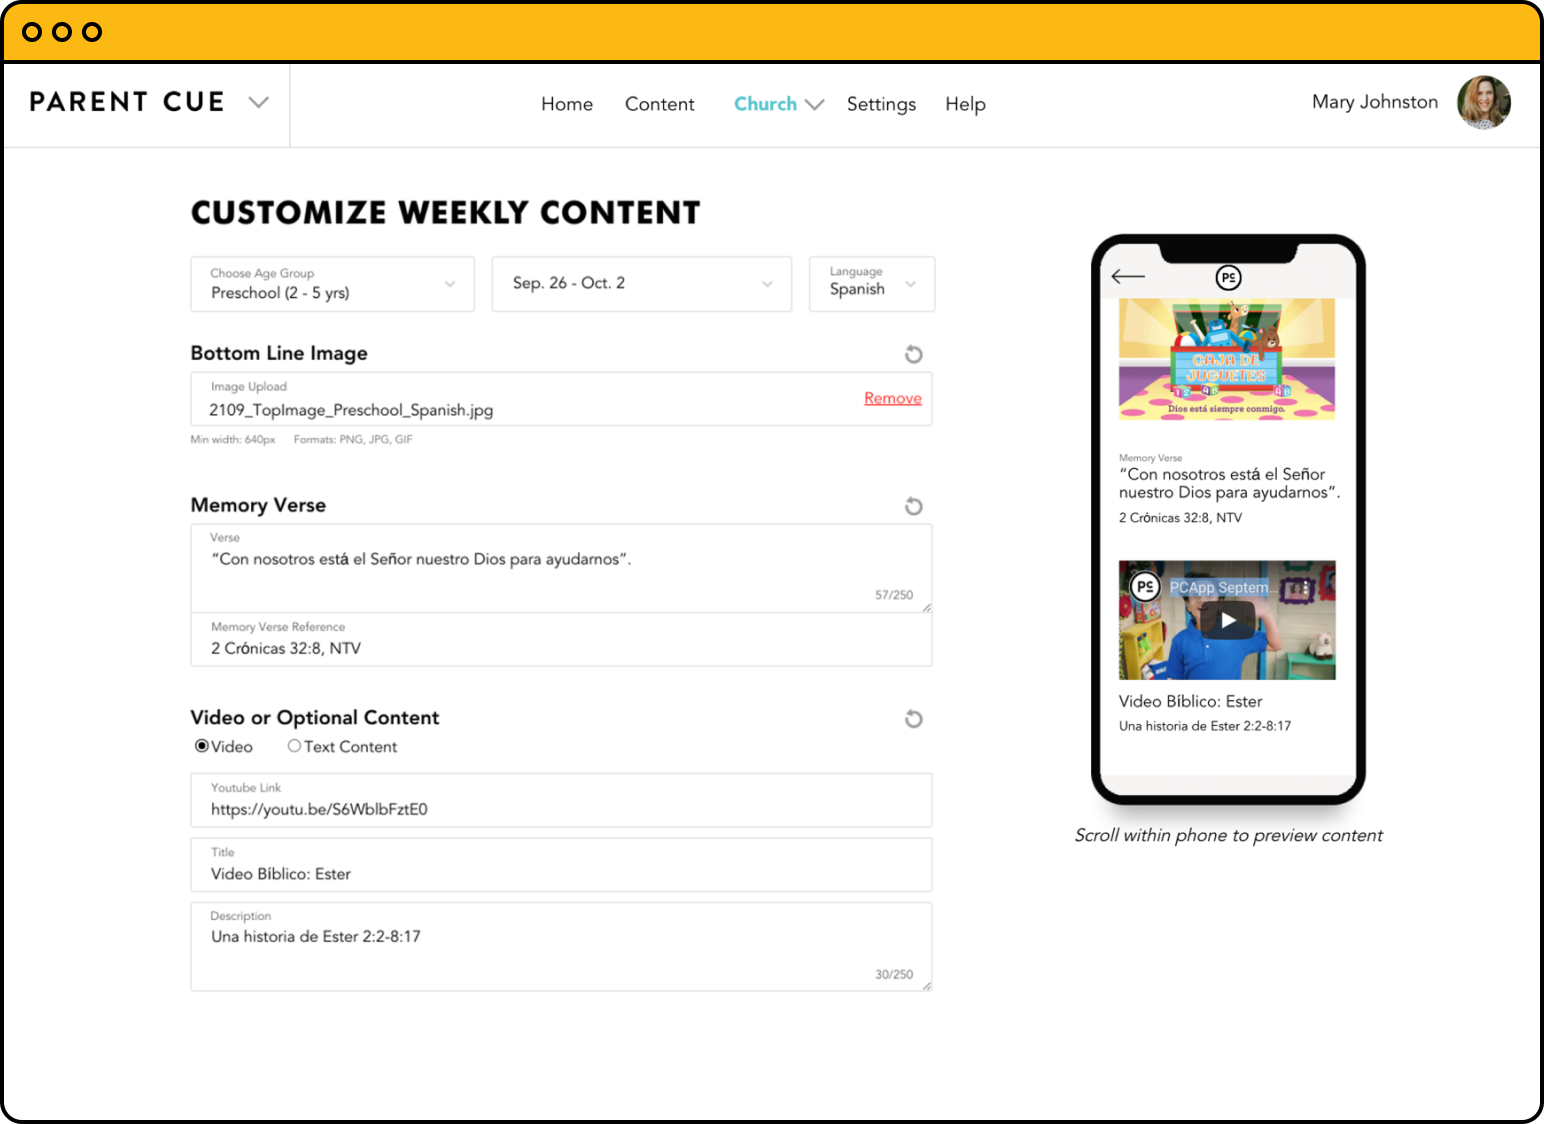 Available in English and Spanish with additional customization for Special Needs allows parents to control the content most relevant to their unique child.